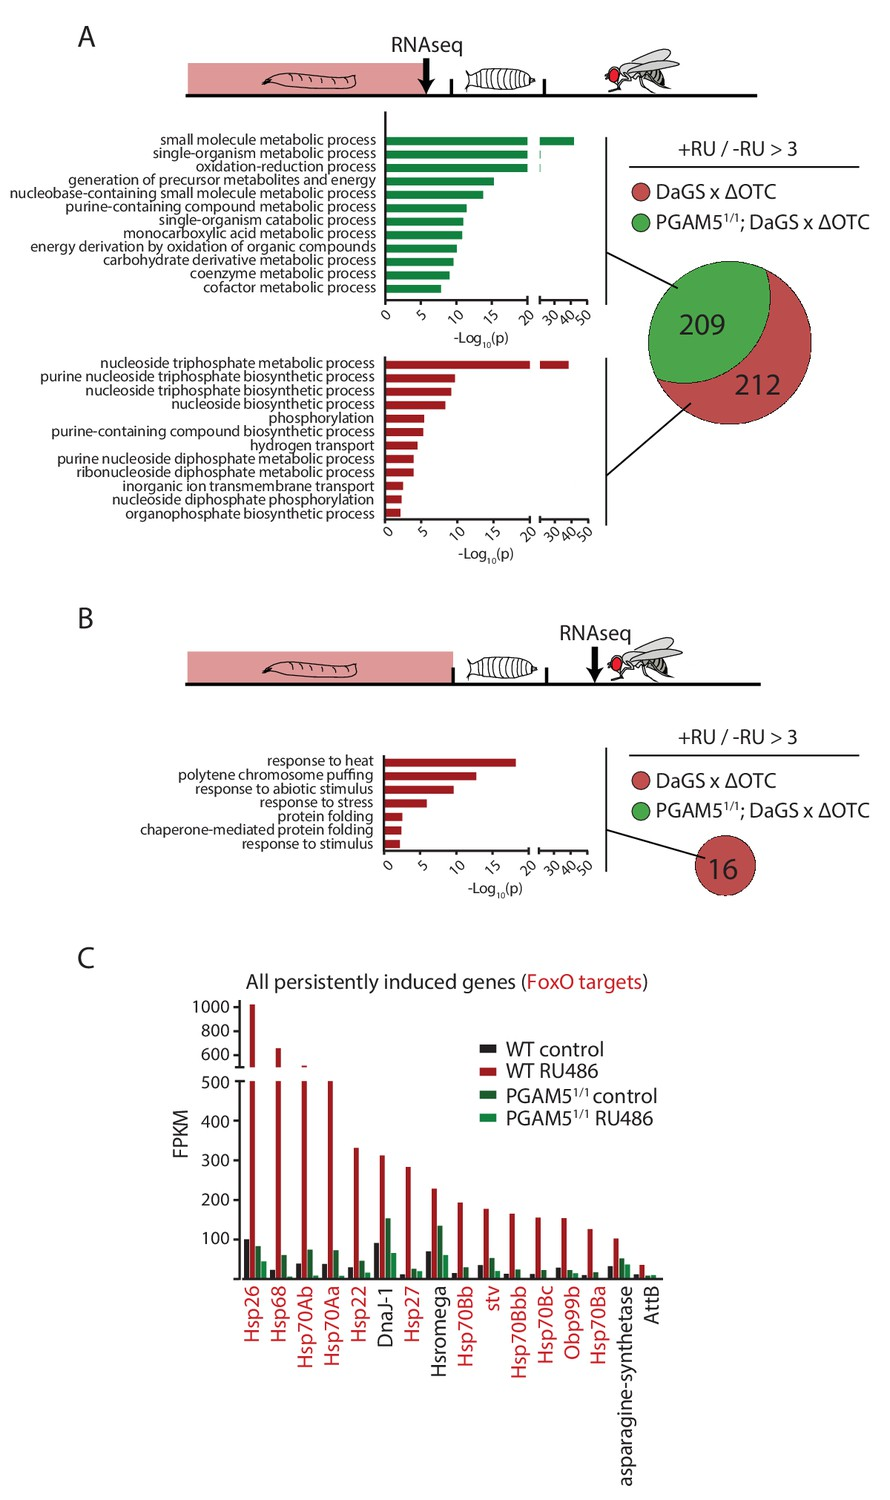 Lasting Transcriptional Activation Of Foxo Targets After Developmental Stress